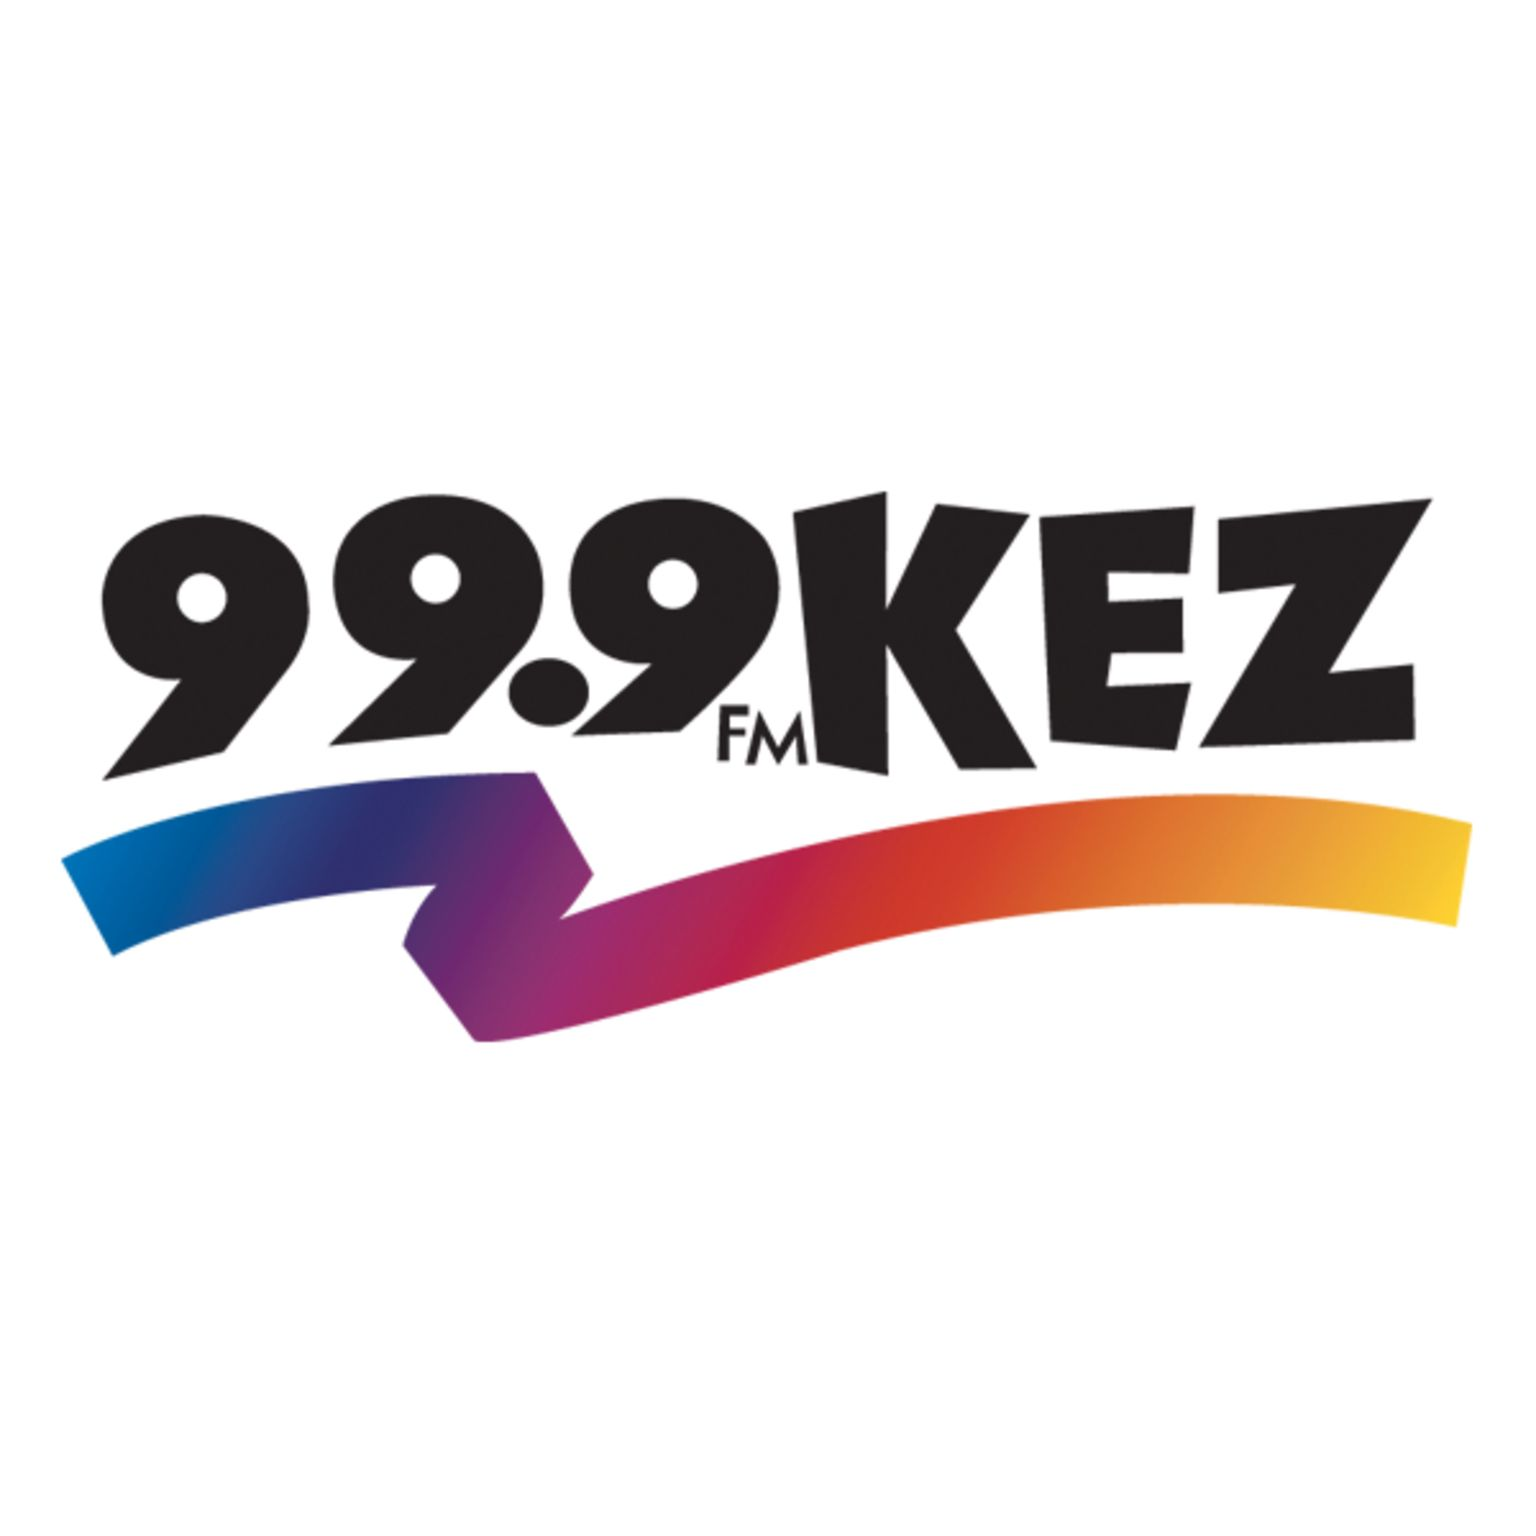 I\'m listening to 99.9 KEZ Phoenix, The Valley\'s Workday Station ...